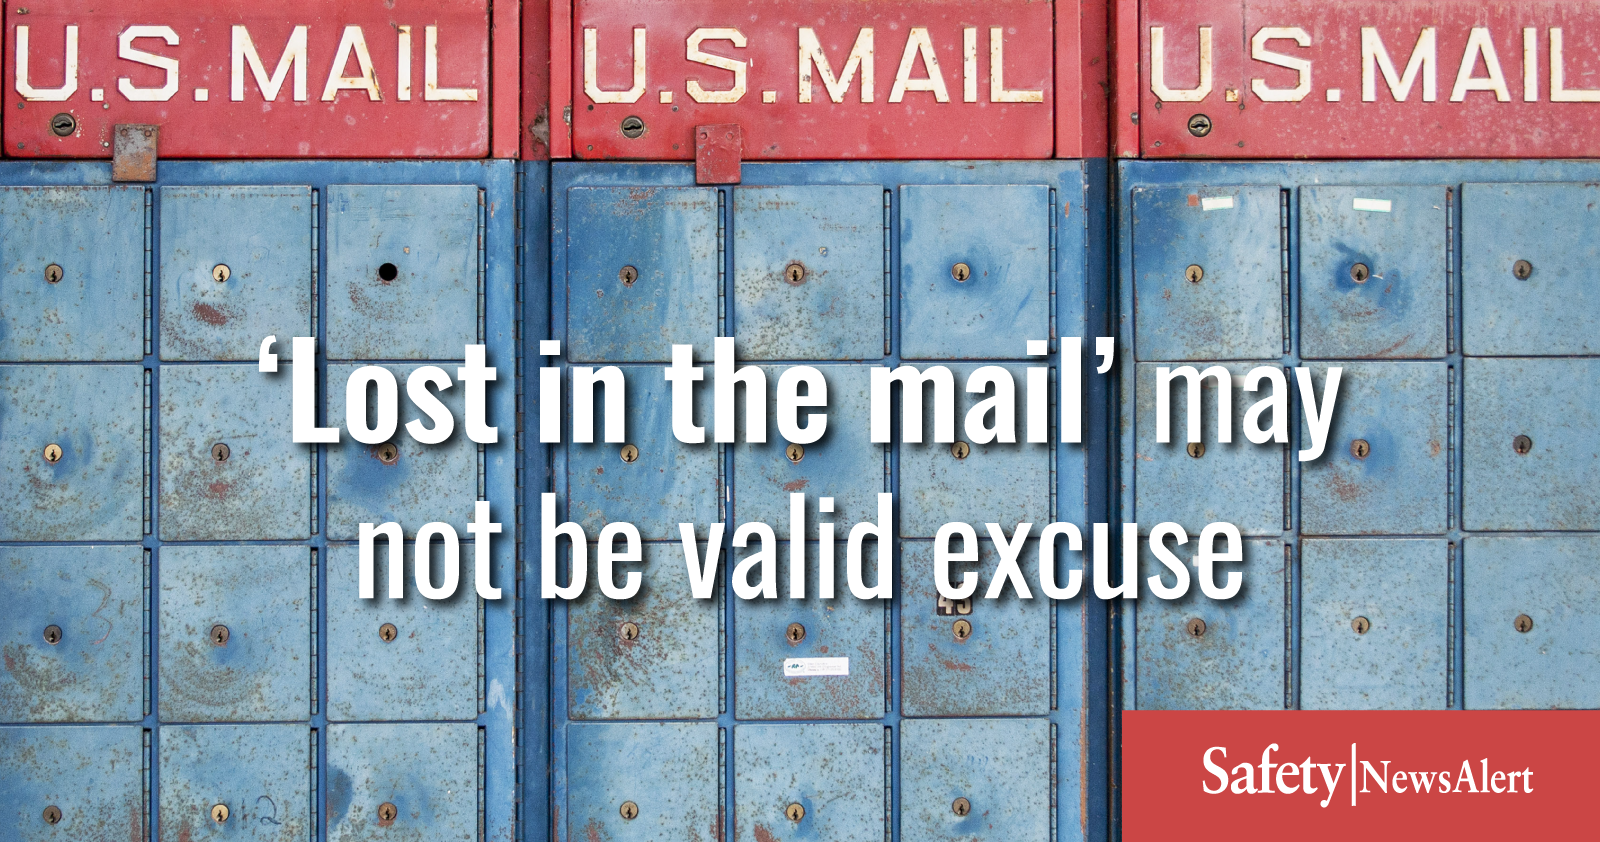 lost in the mail may not be valid excuse